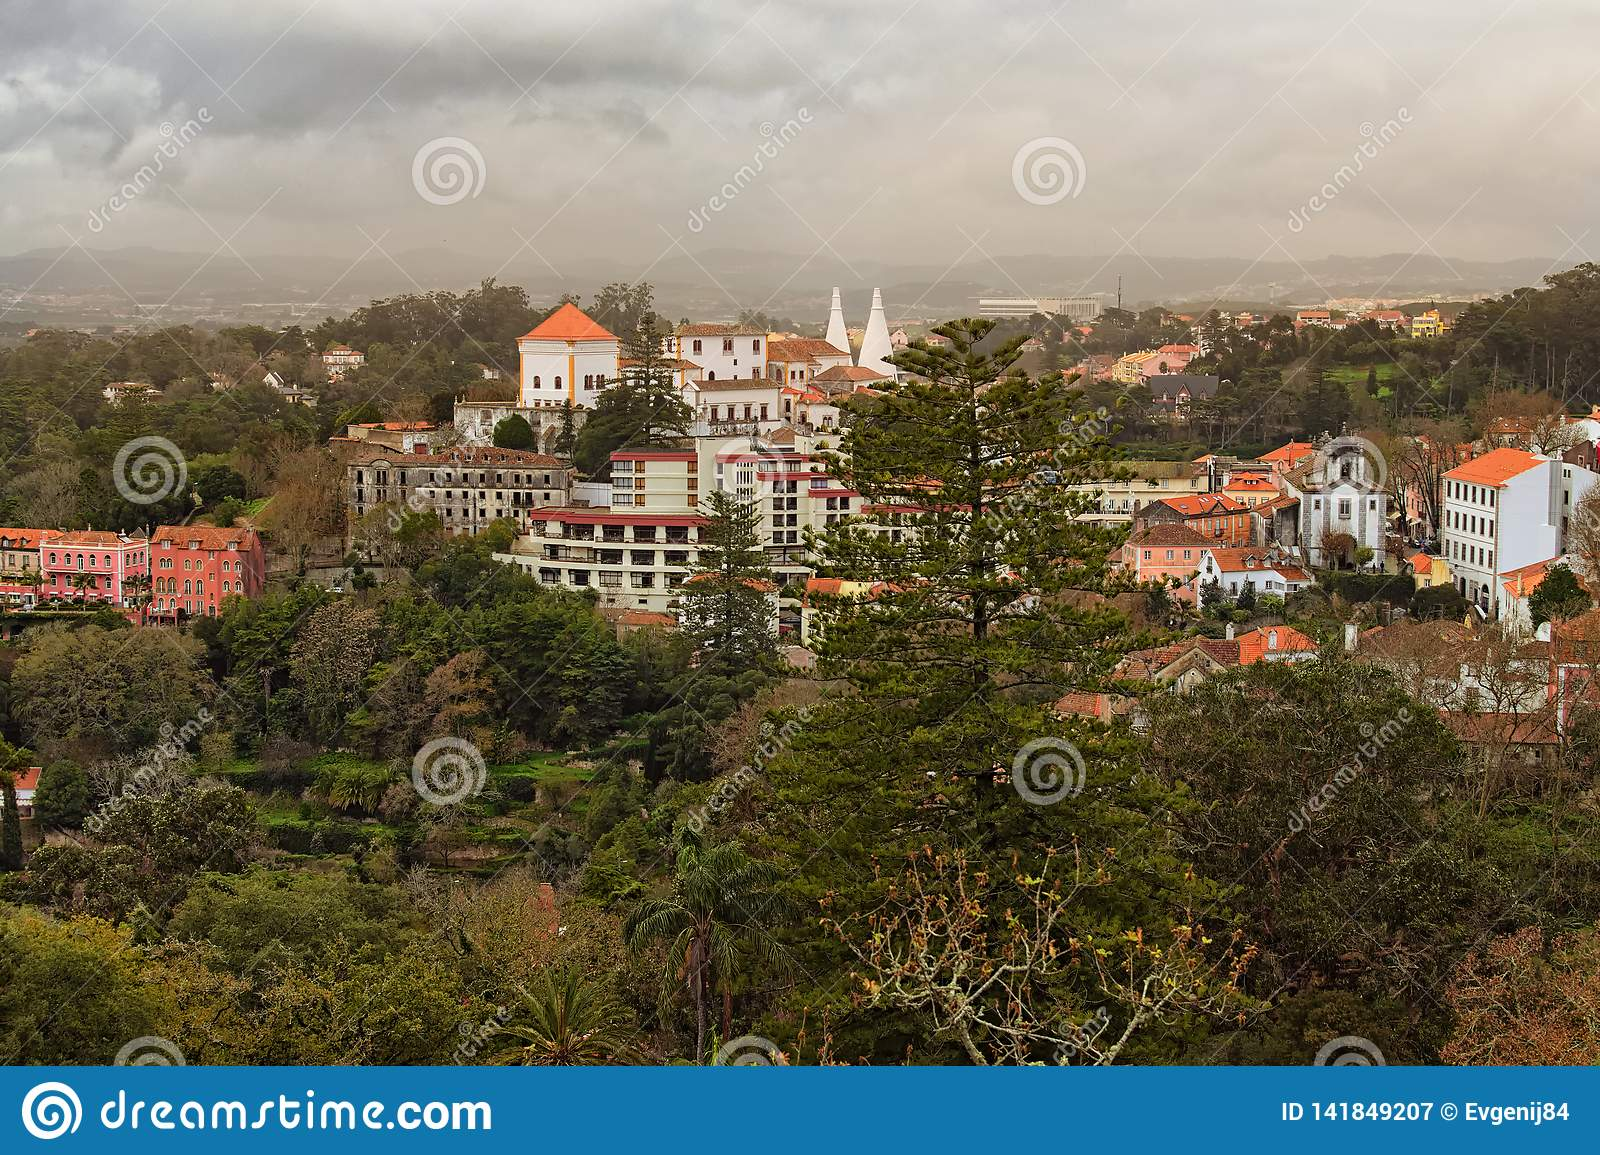 Beautiful landscape photo of medieval Sintra and stunning nature round it. Dramatic sky with thunderclouds